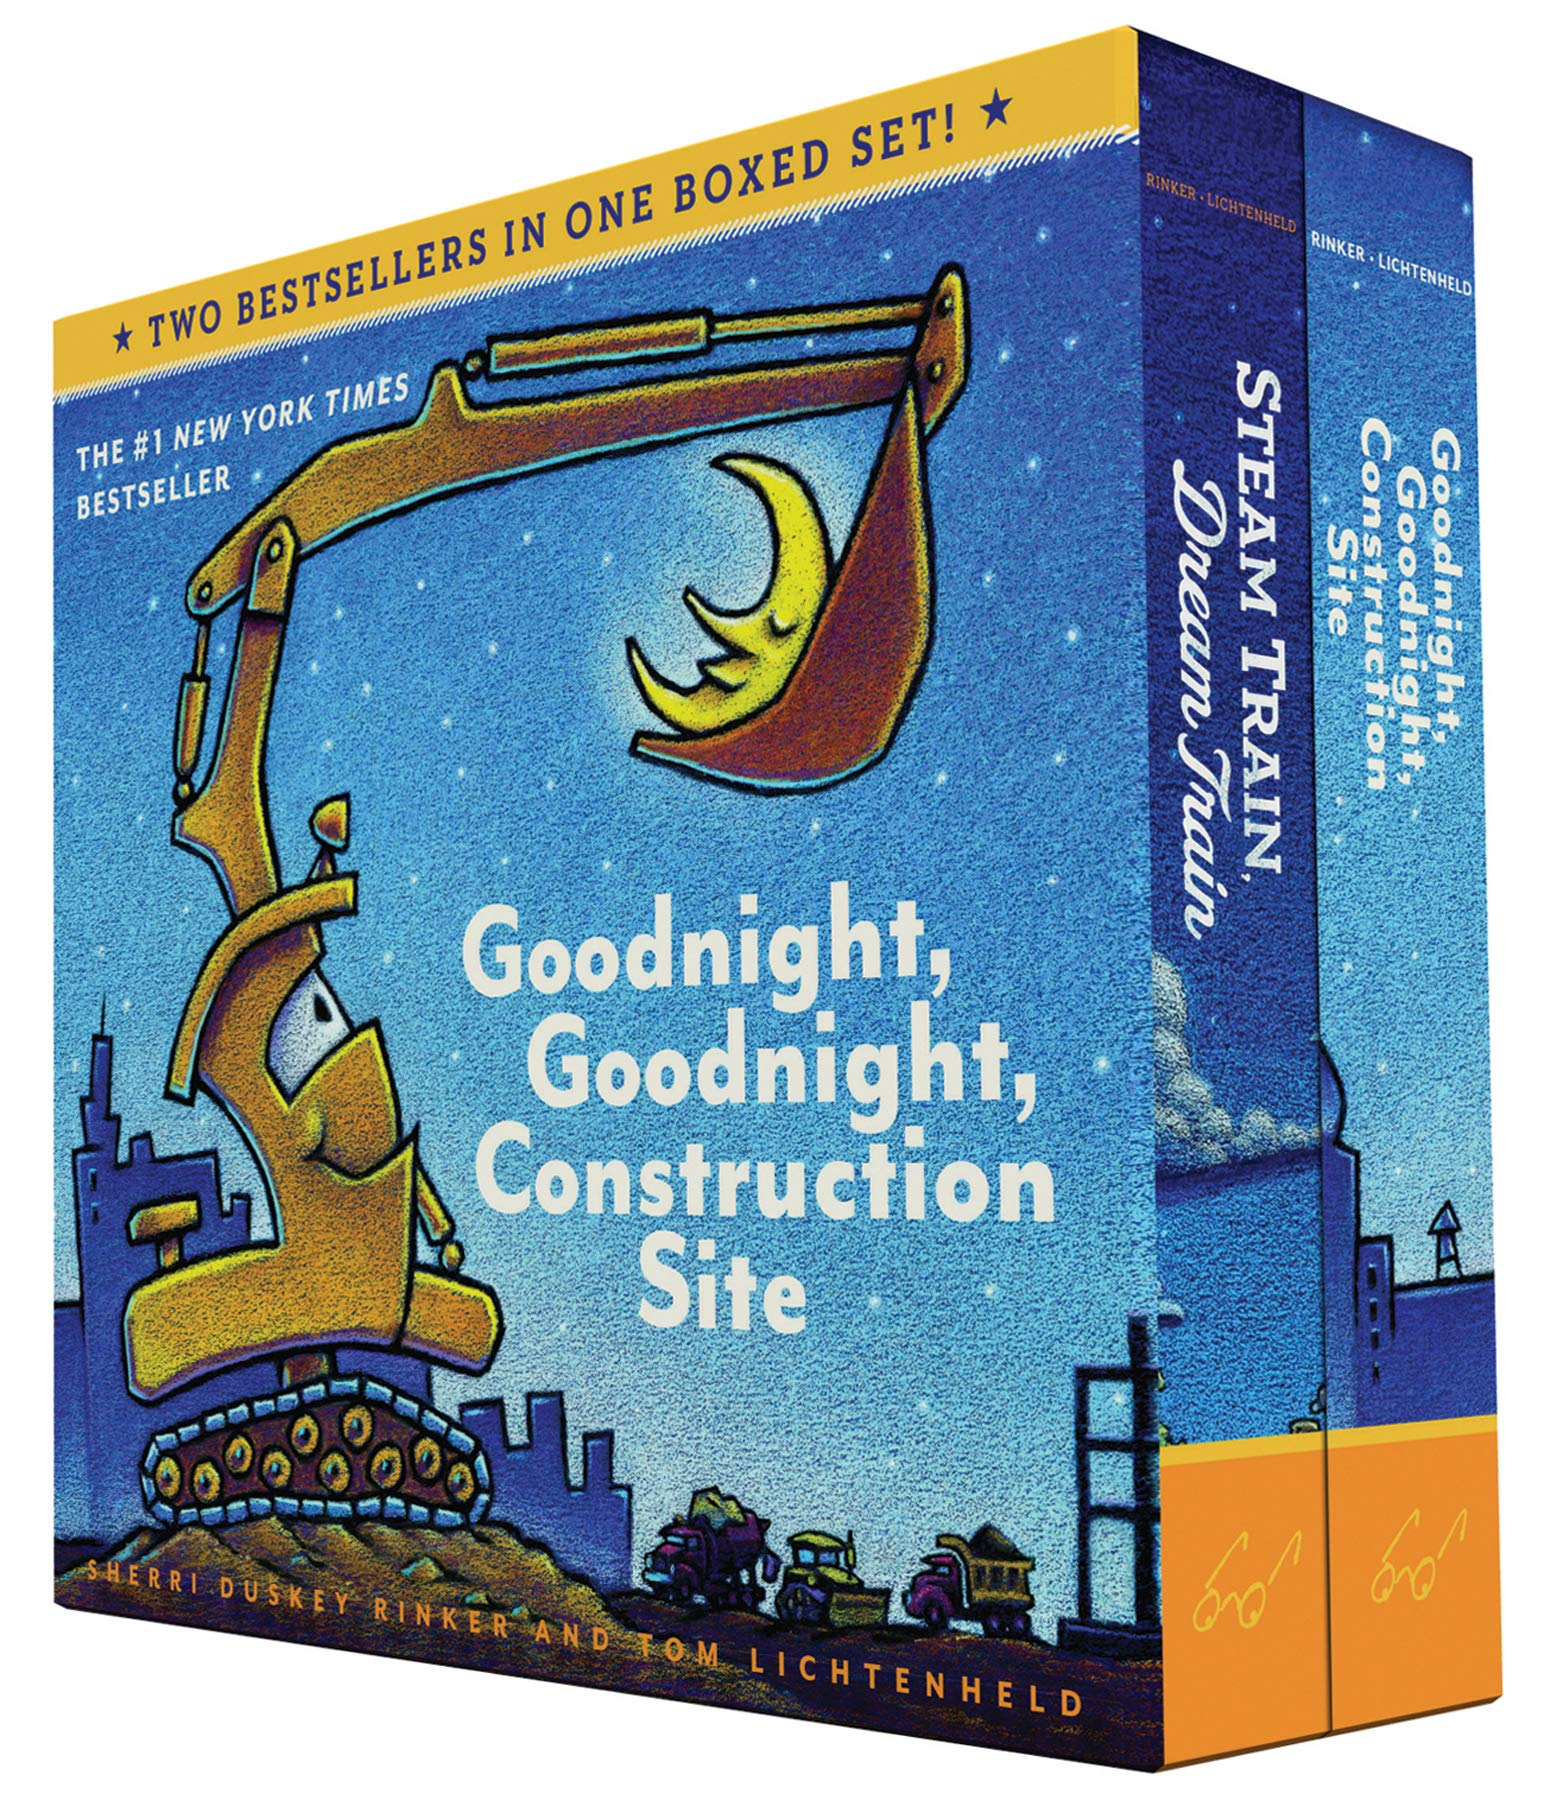 Amazon.com: Goodnight, Goodnight, Construction Site and ...